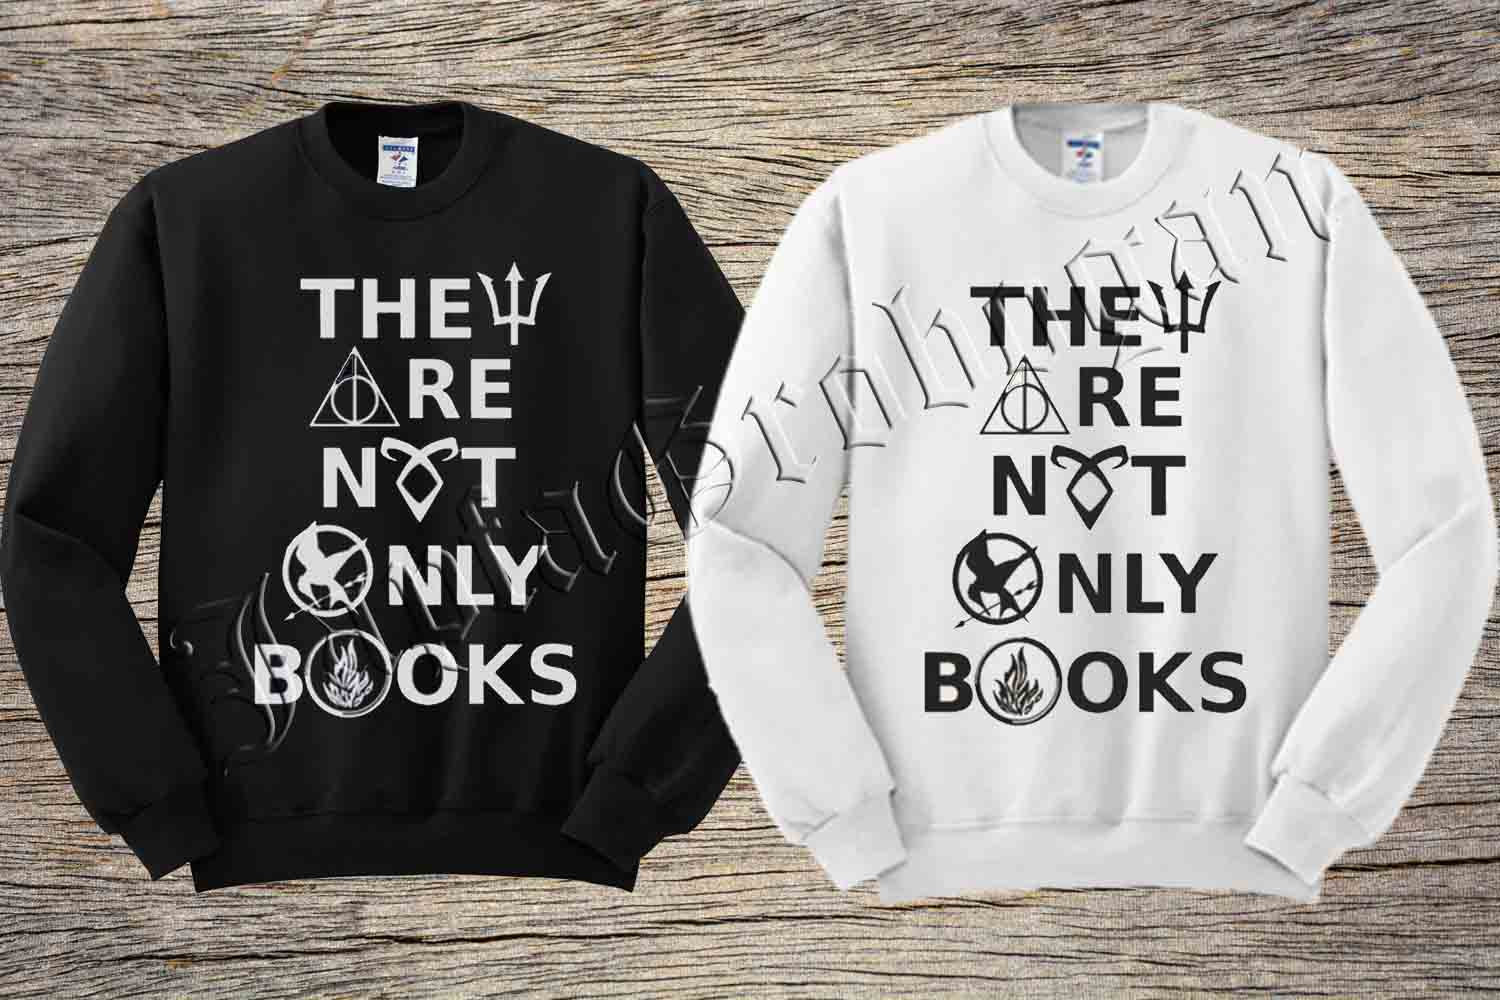 They are not only books sweater black and white sweatshirt crewneck men or women unisex size